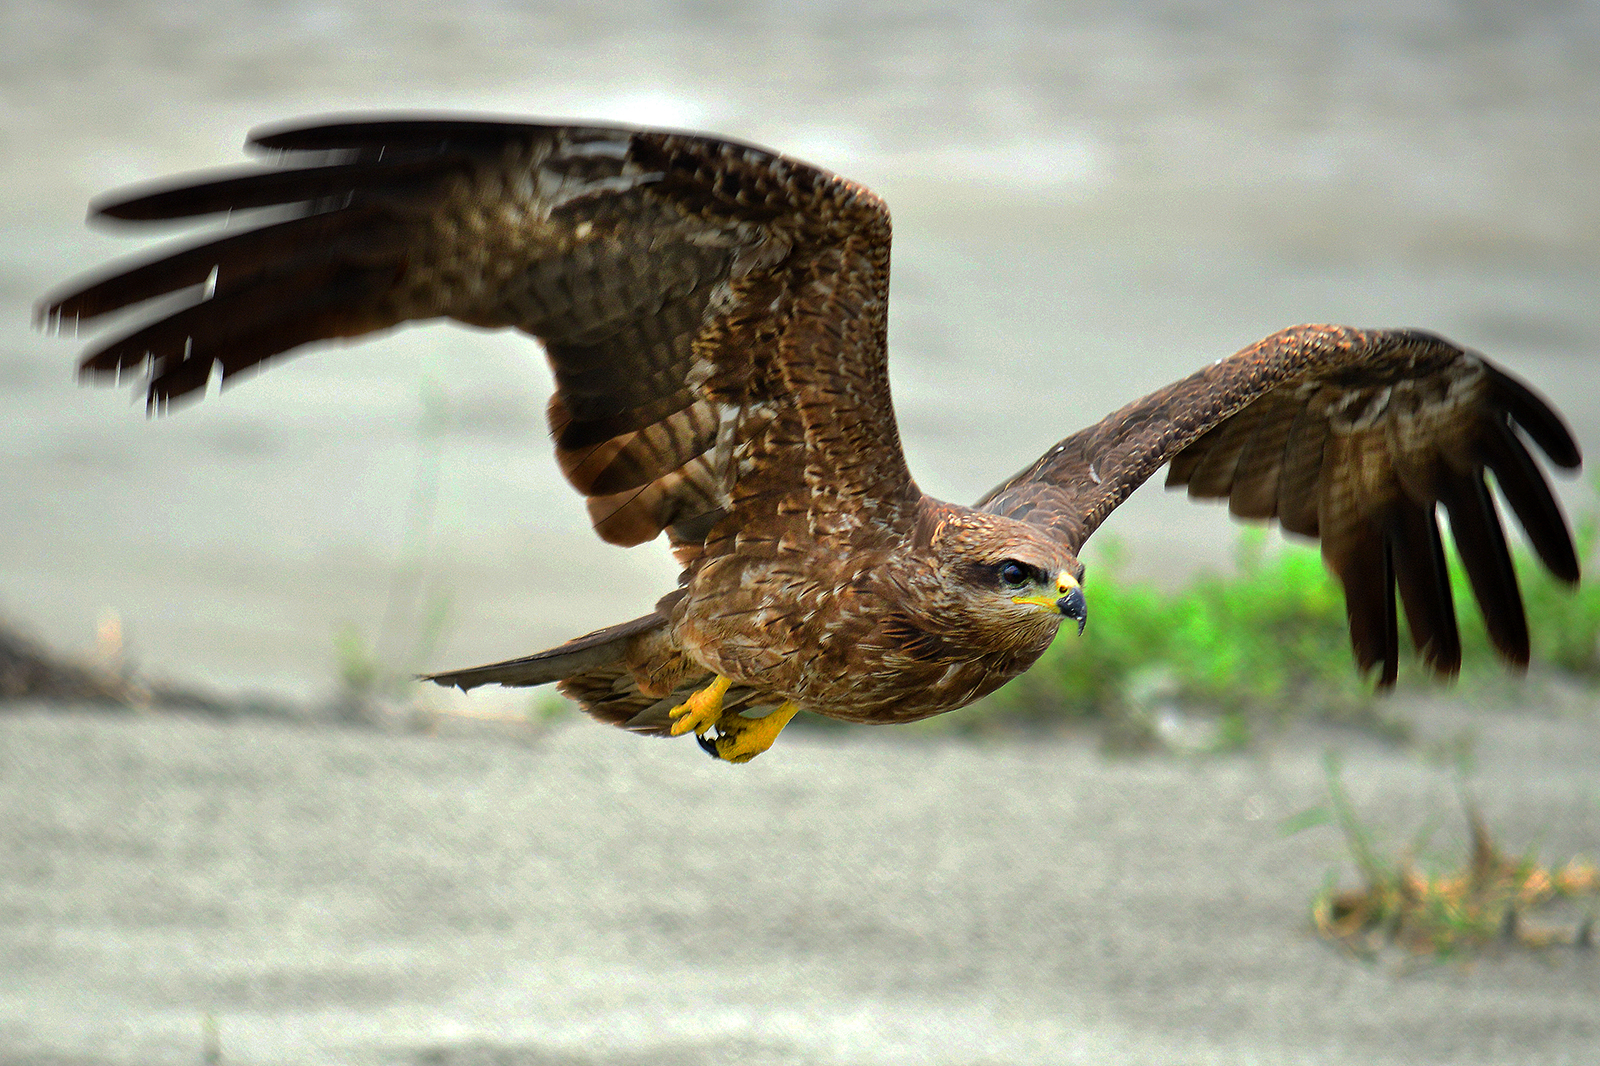 Black Kite at Coochbehar